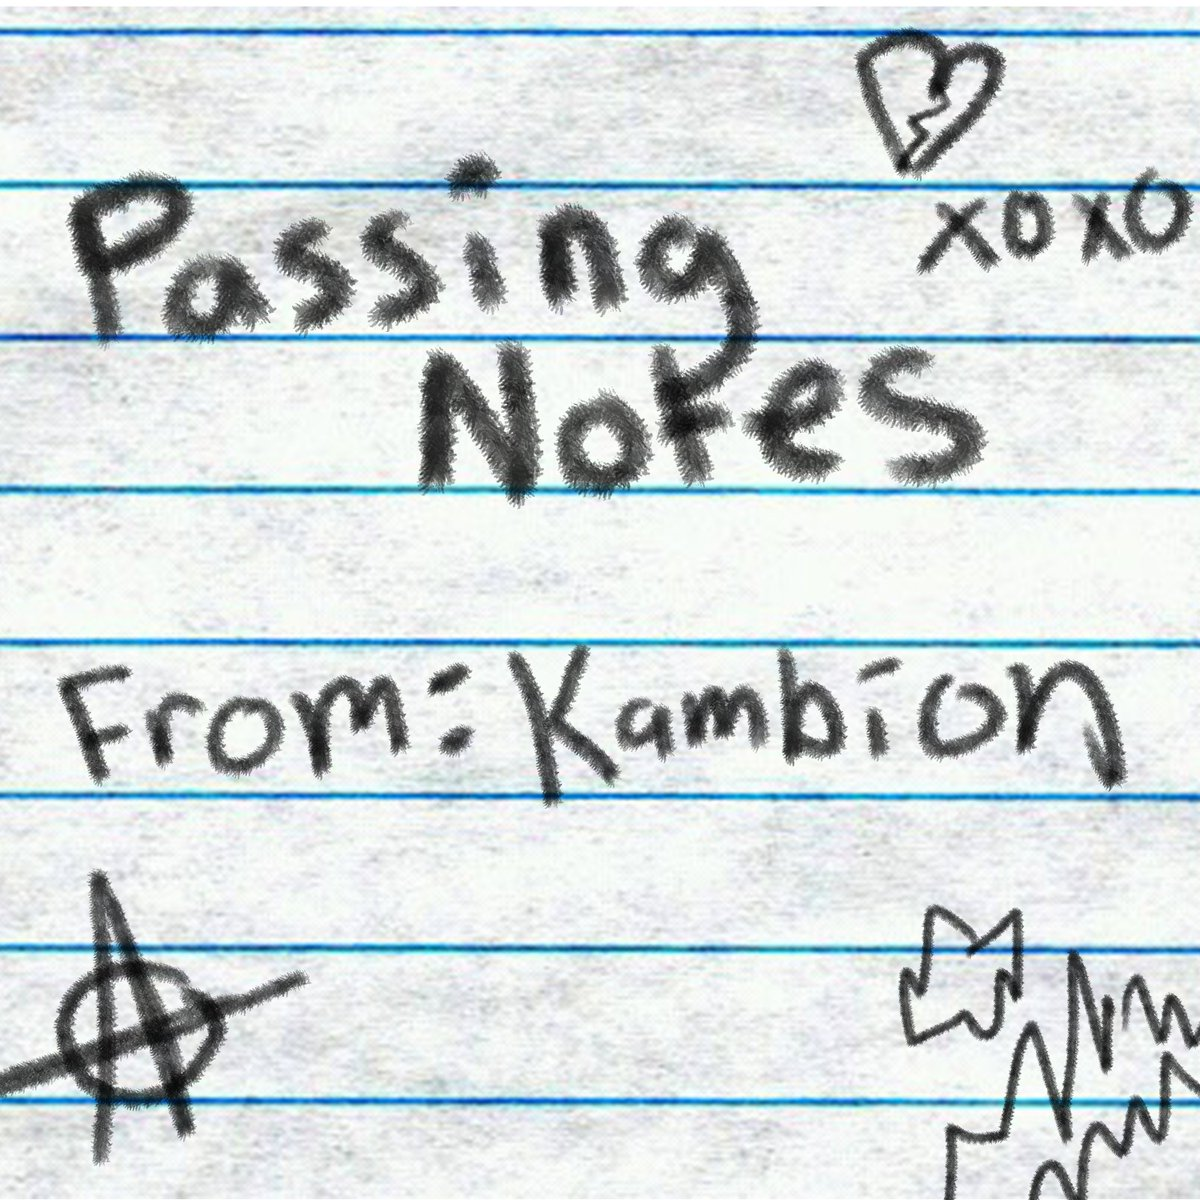 """""""Passing Notes"""" Prod. @BrianSpencer302 Out Now! On ALL Major Streaming Platforms: https://t.co/zekviRHIQ4 https://t.co/WapI6wyMIb"""